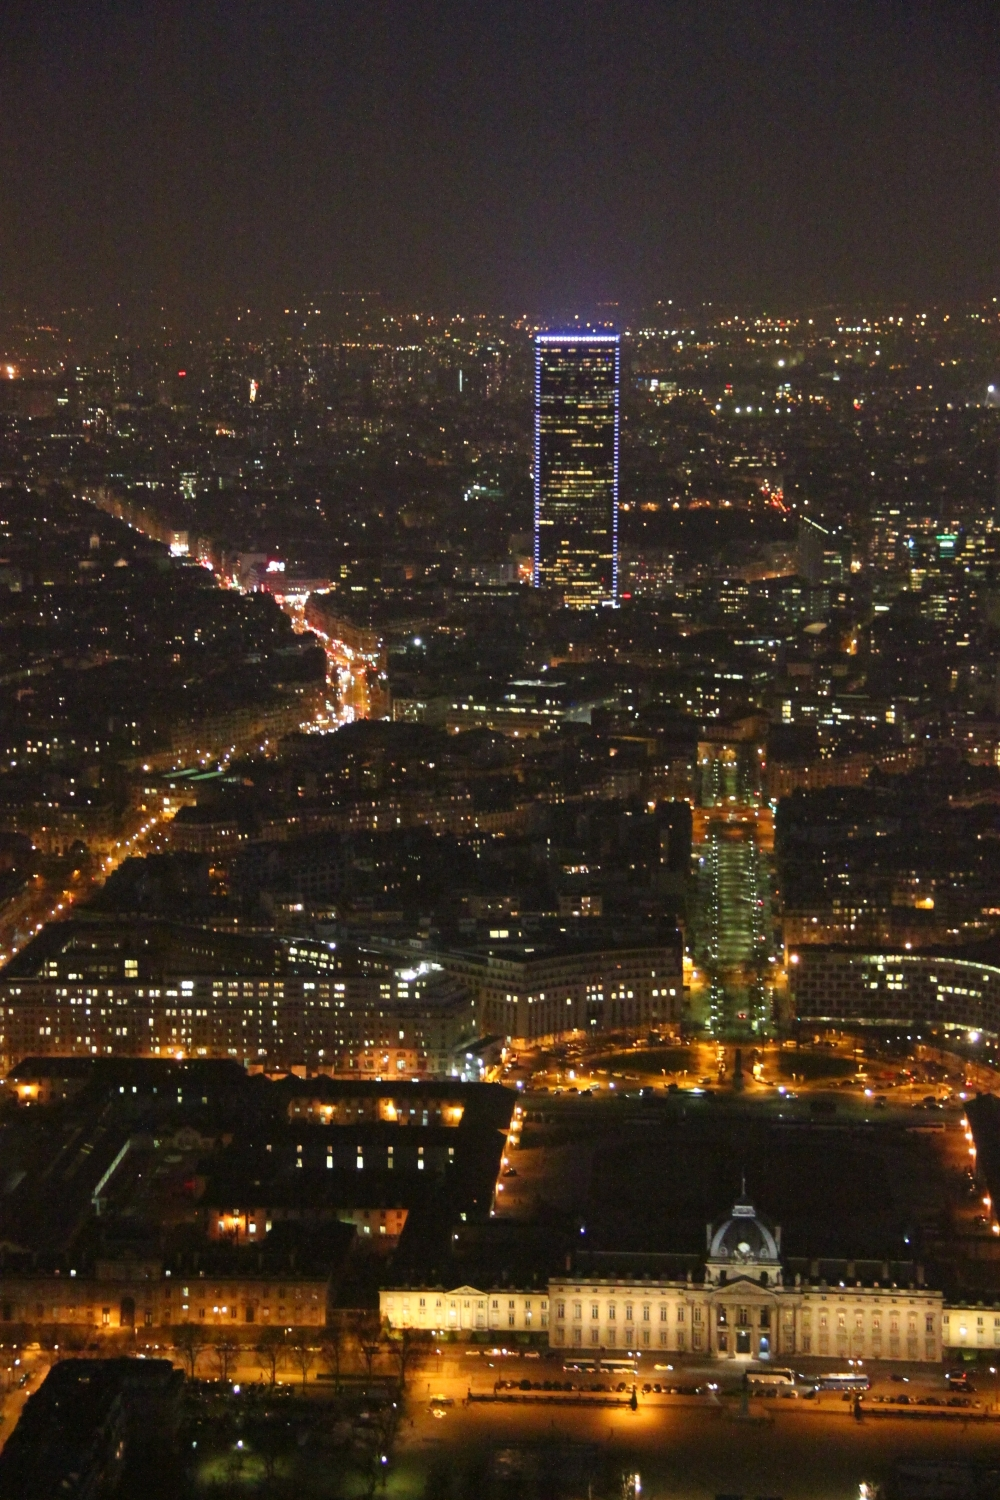 Eiffel Tower - Tour Montparnasse